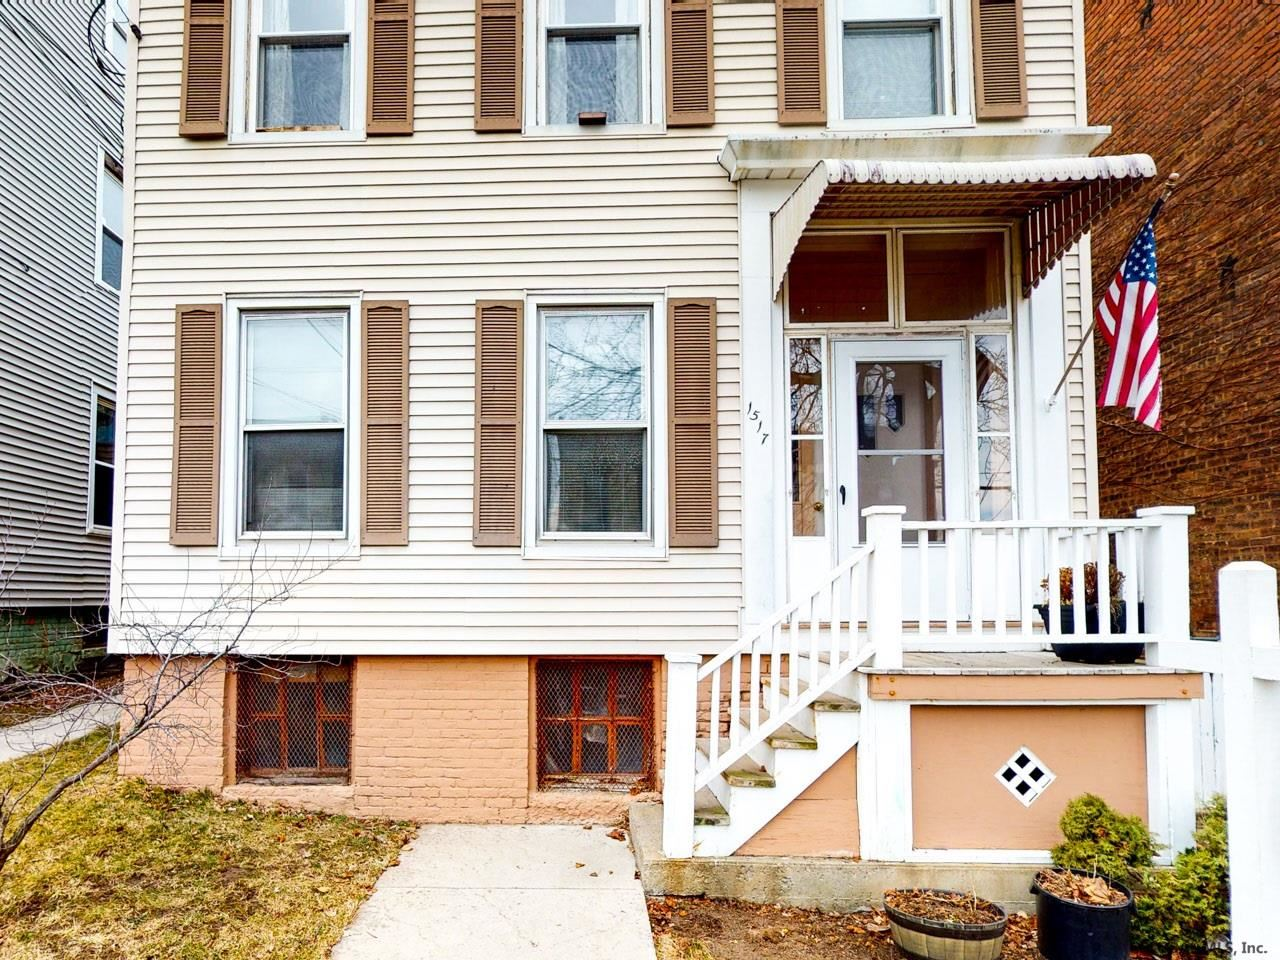 1517 5TH AV, Watervliet, NY 12189 - #: 202113933